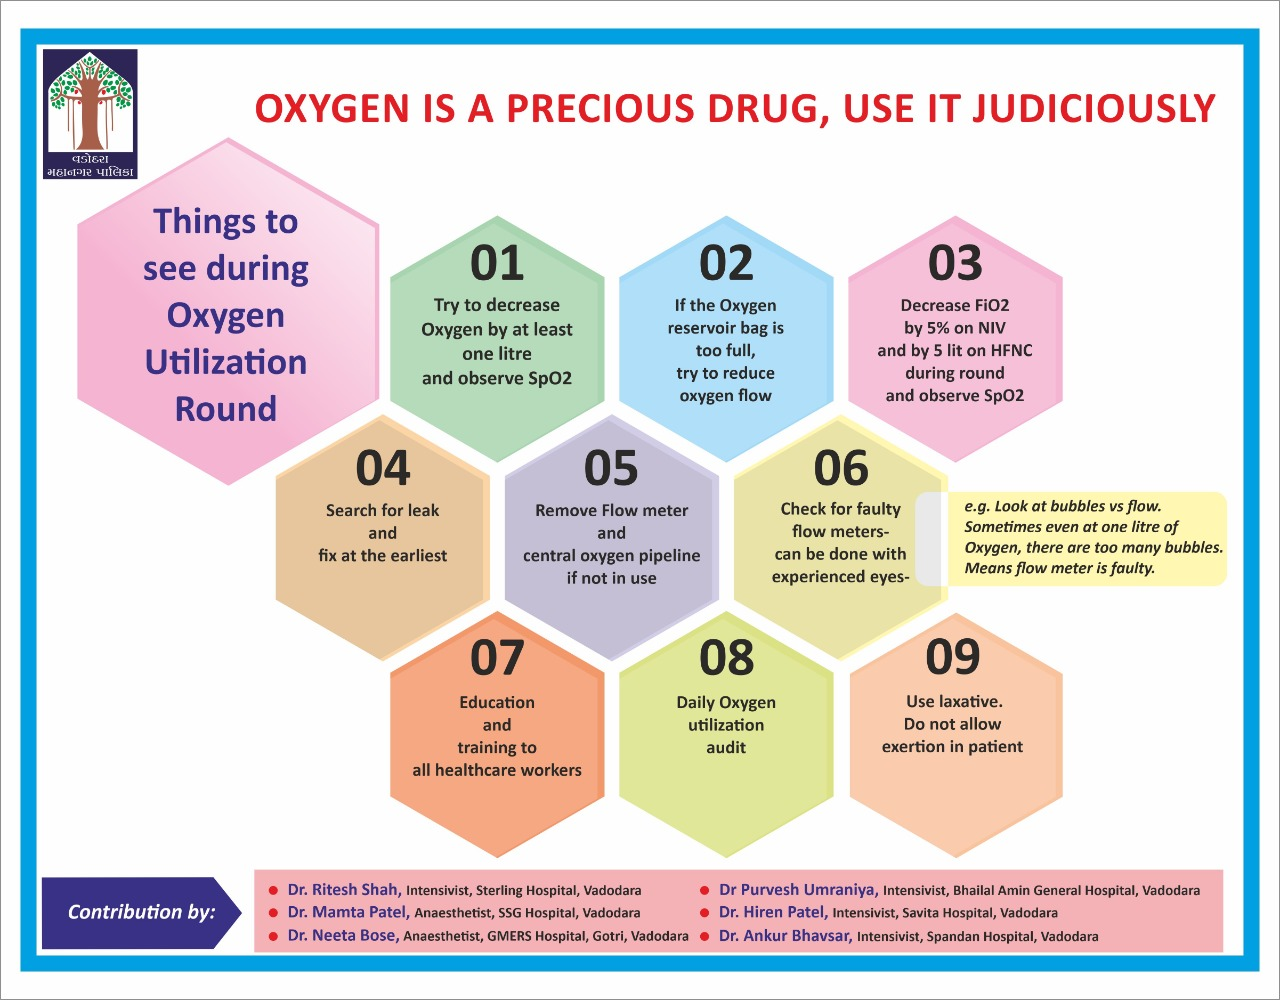 A 9 point Oxygen Management Guideline has been formulated for economical use of Oxygen